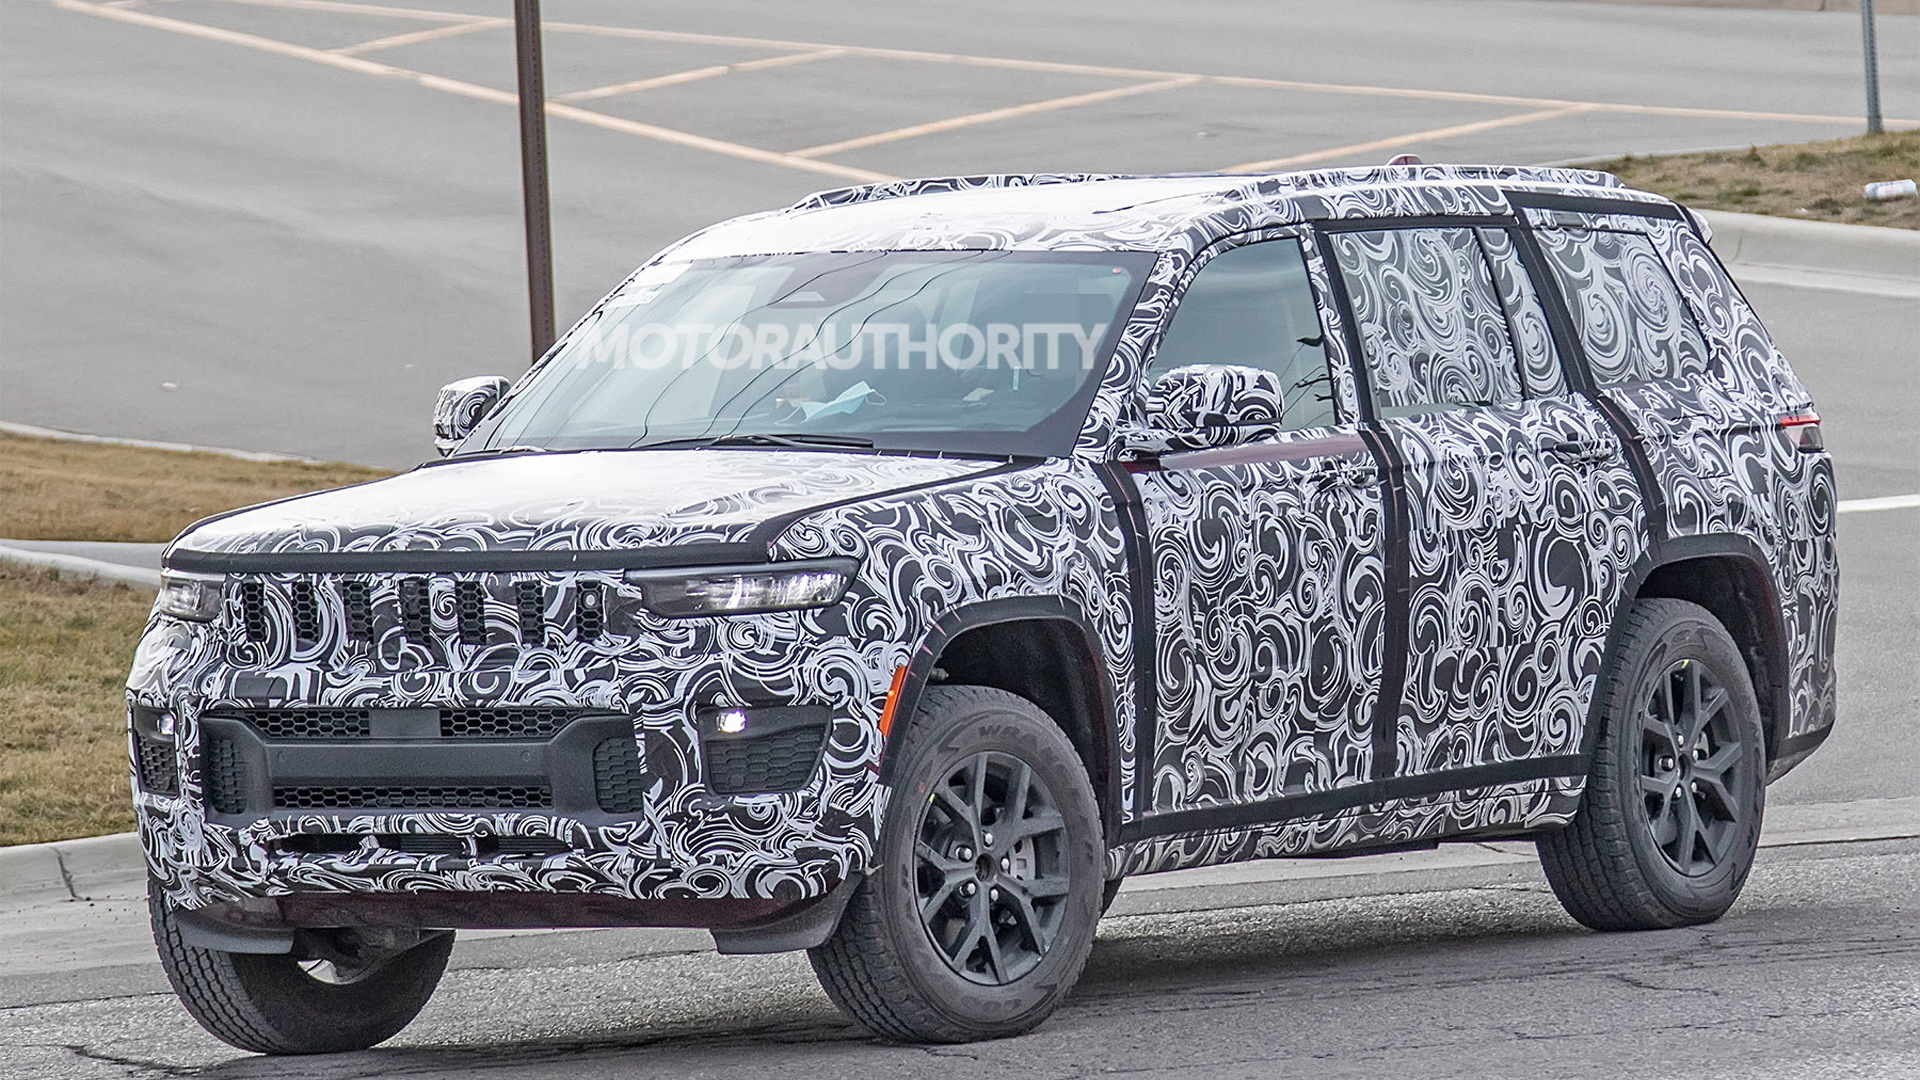 2022 Jeep Grand Cherokee spy shots - Photo credit: S. Baldauf/SB-Medien